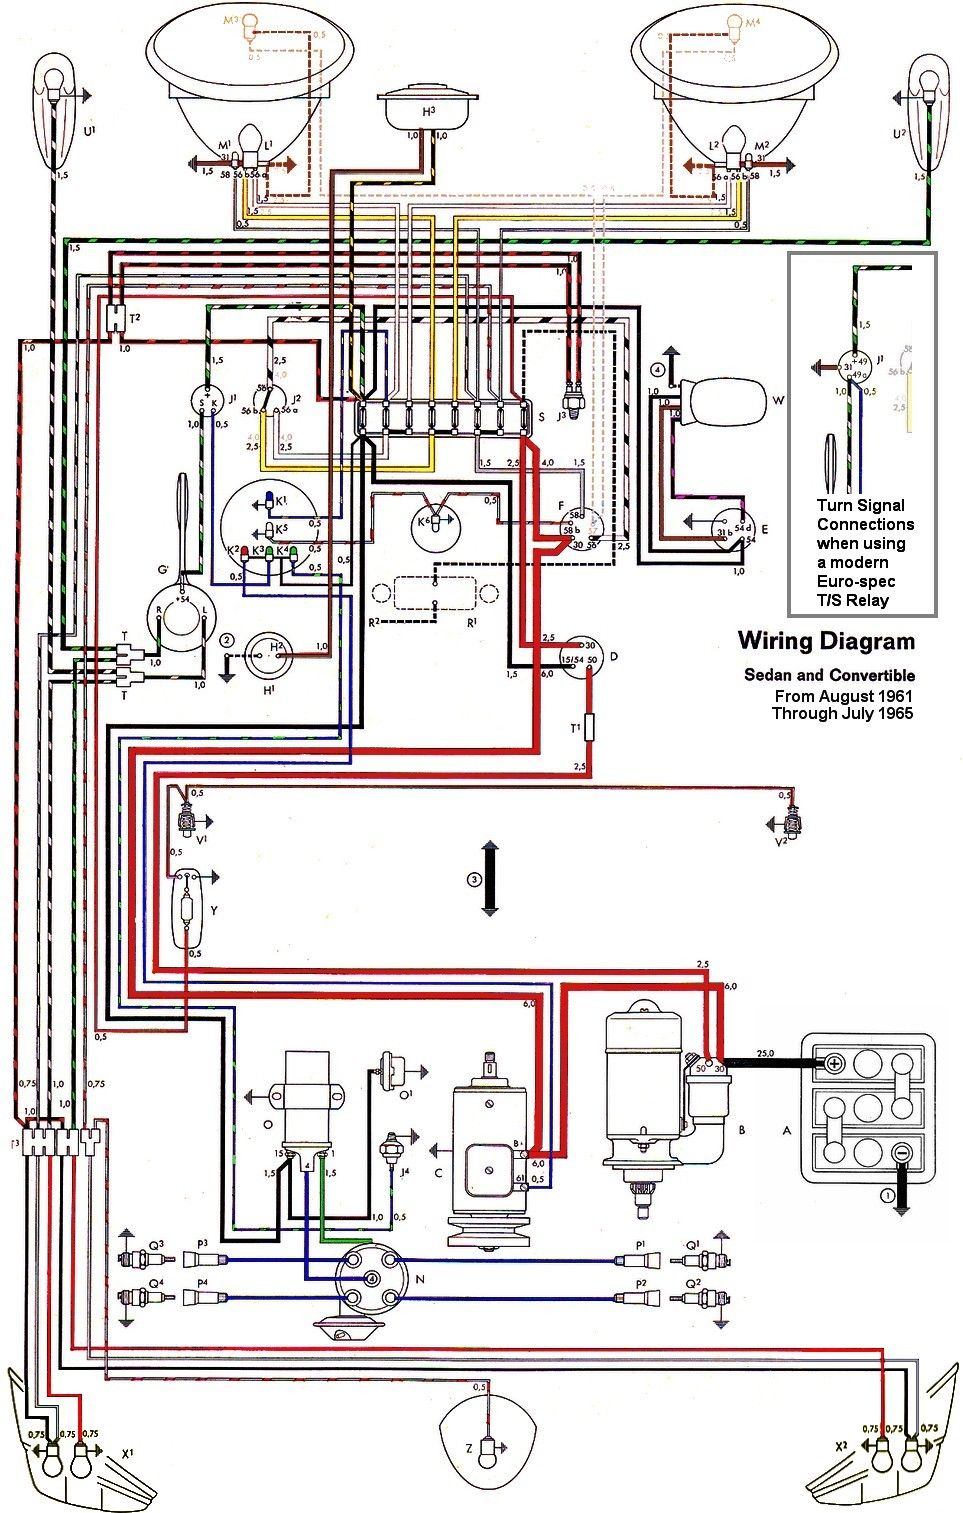 Wiring Diagram Vw Beetle Sedan And Convertible 1961 1965 Vw Super Beetle Fiacao Eletrica Carro Fusca